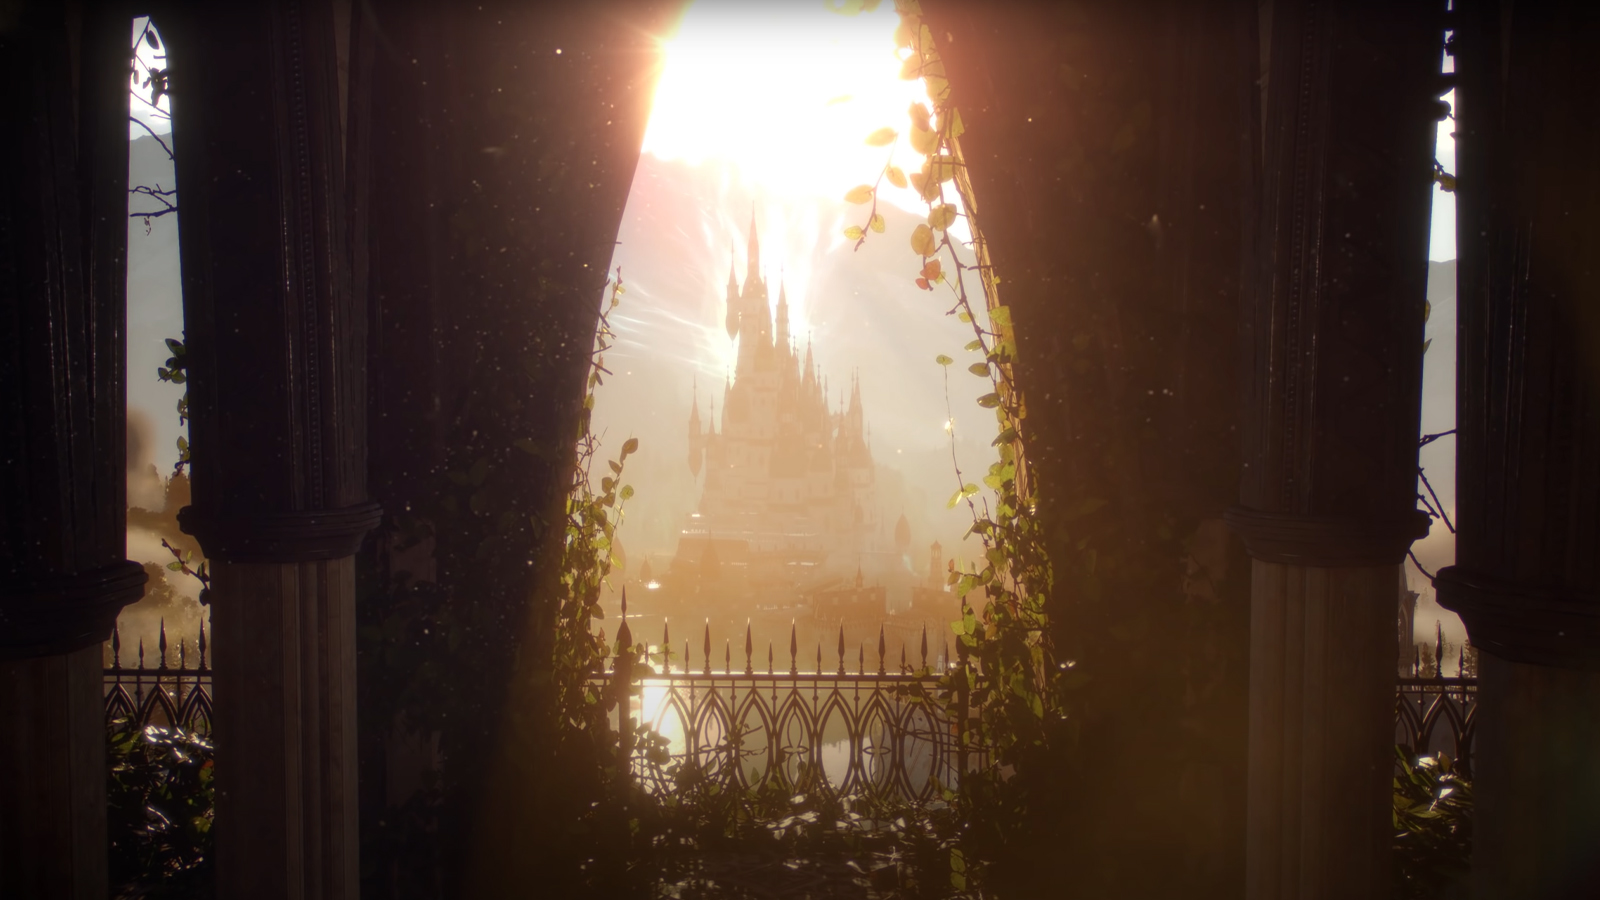 A castle bathed in sunlight in Dragon Age 4